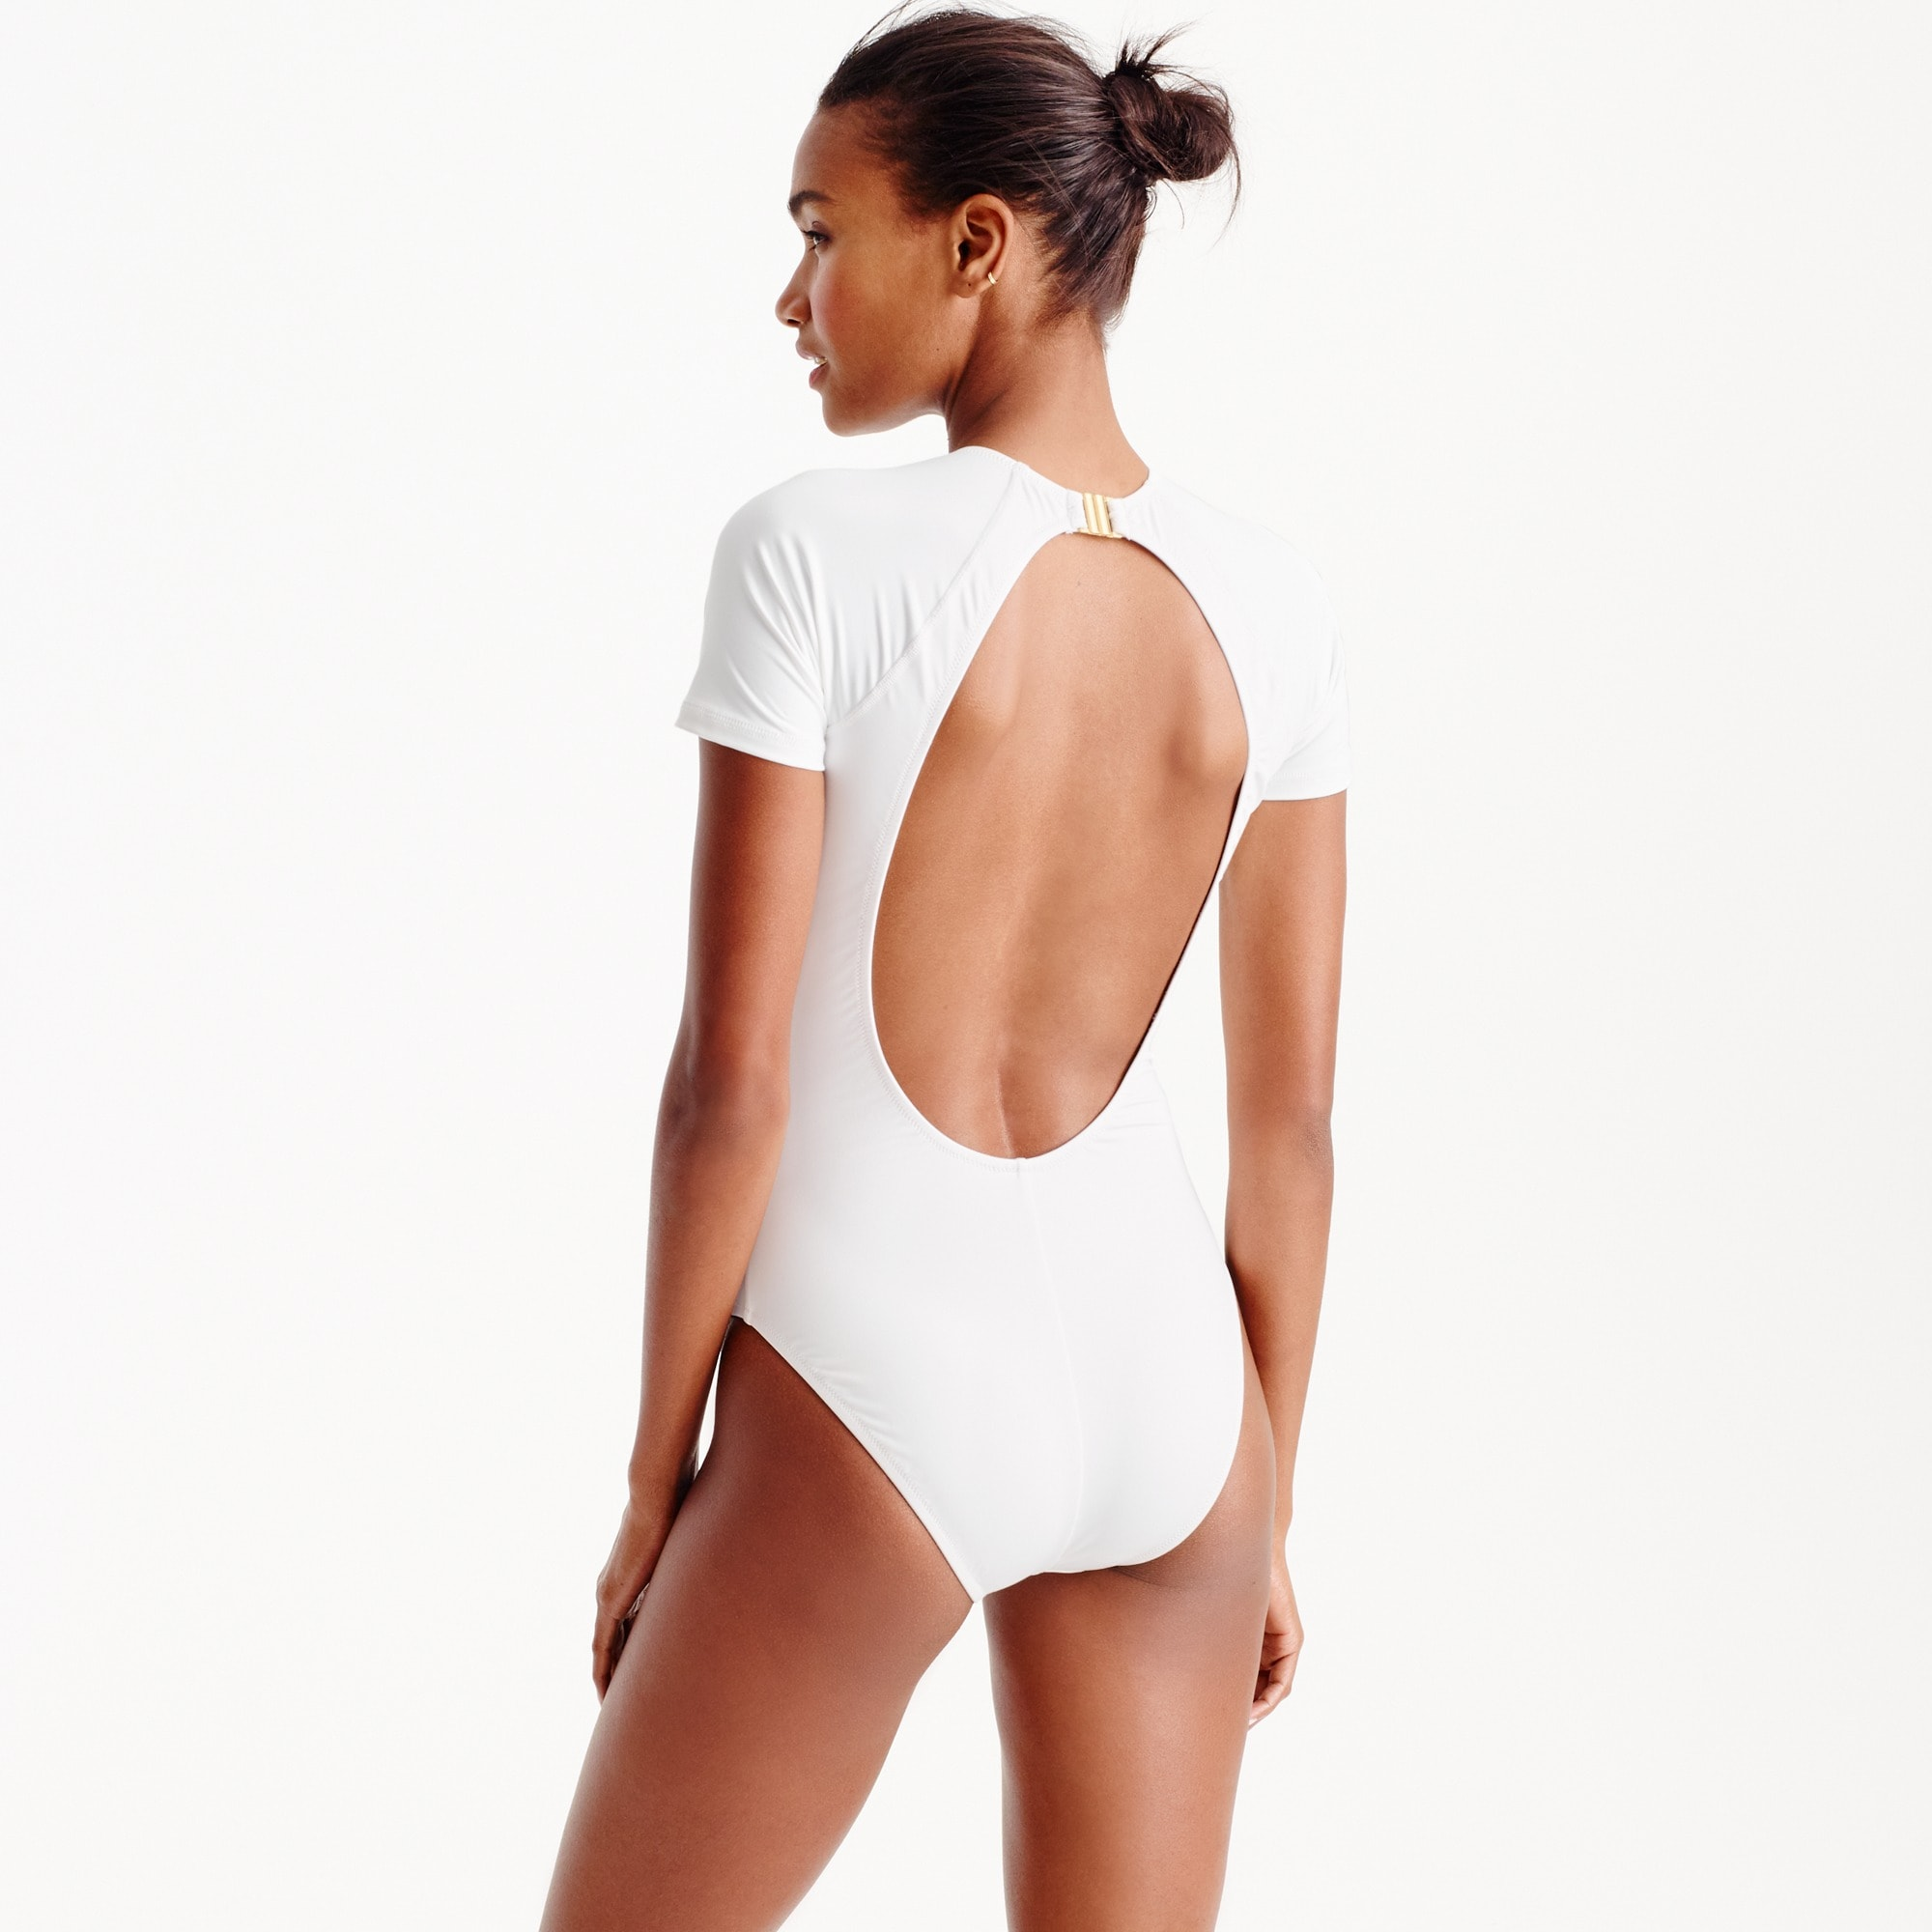 Long torso open-back short-sleeve one-piece swimsuit